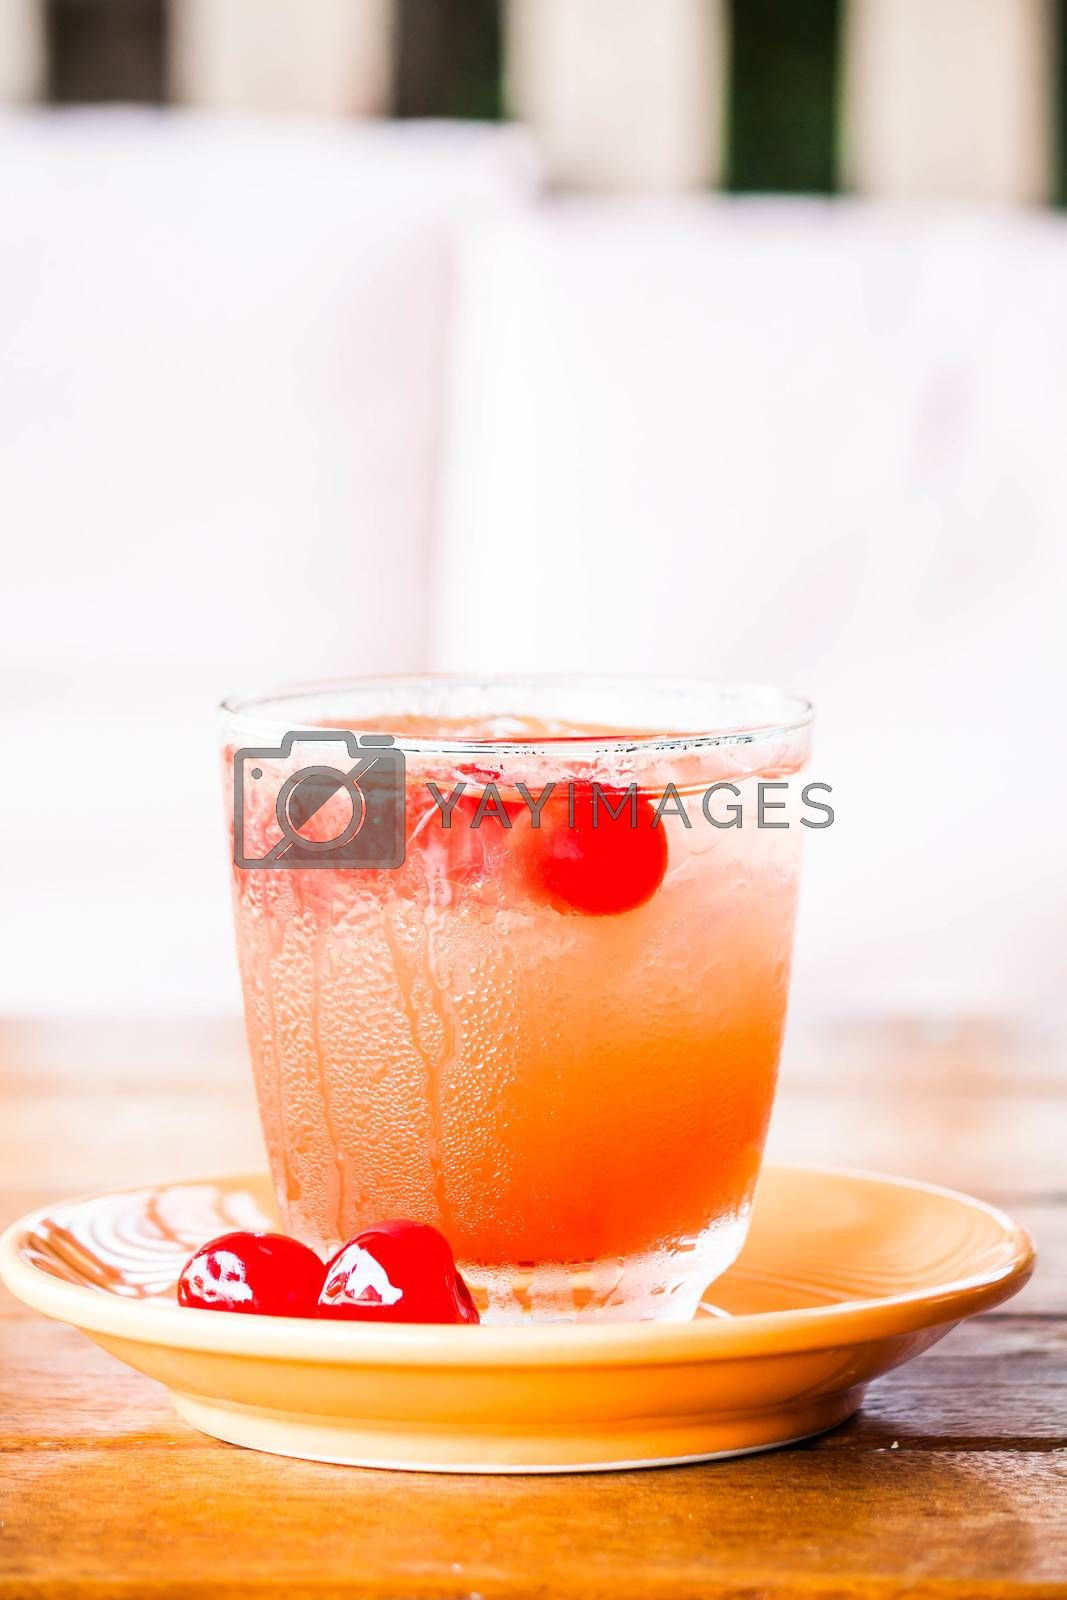 Signature drink with fresh mix fruits juice soda